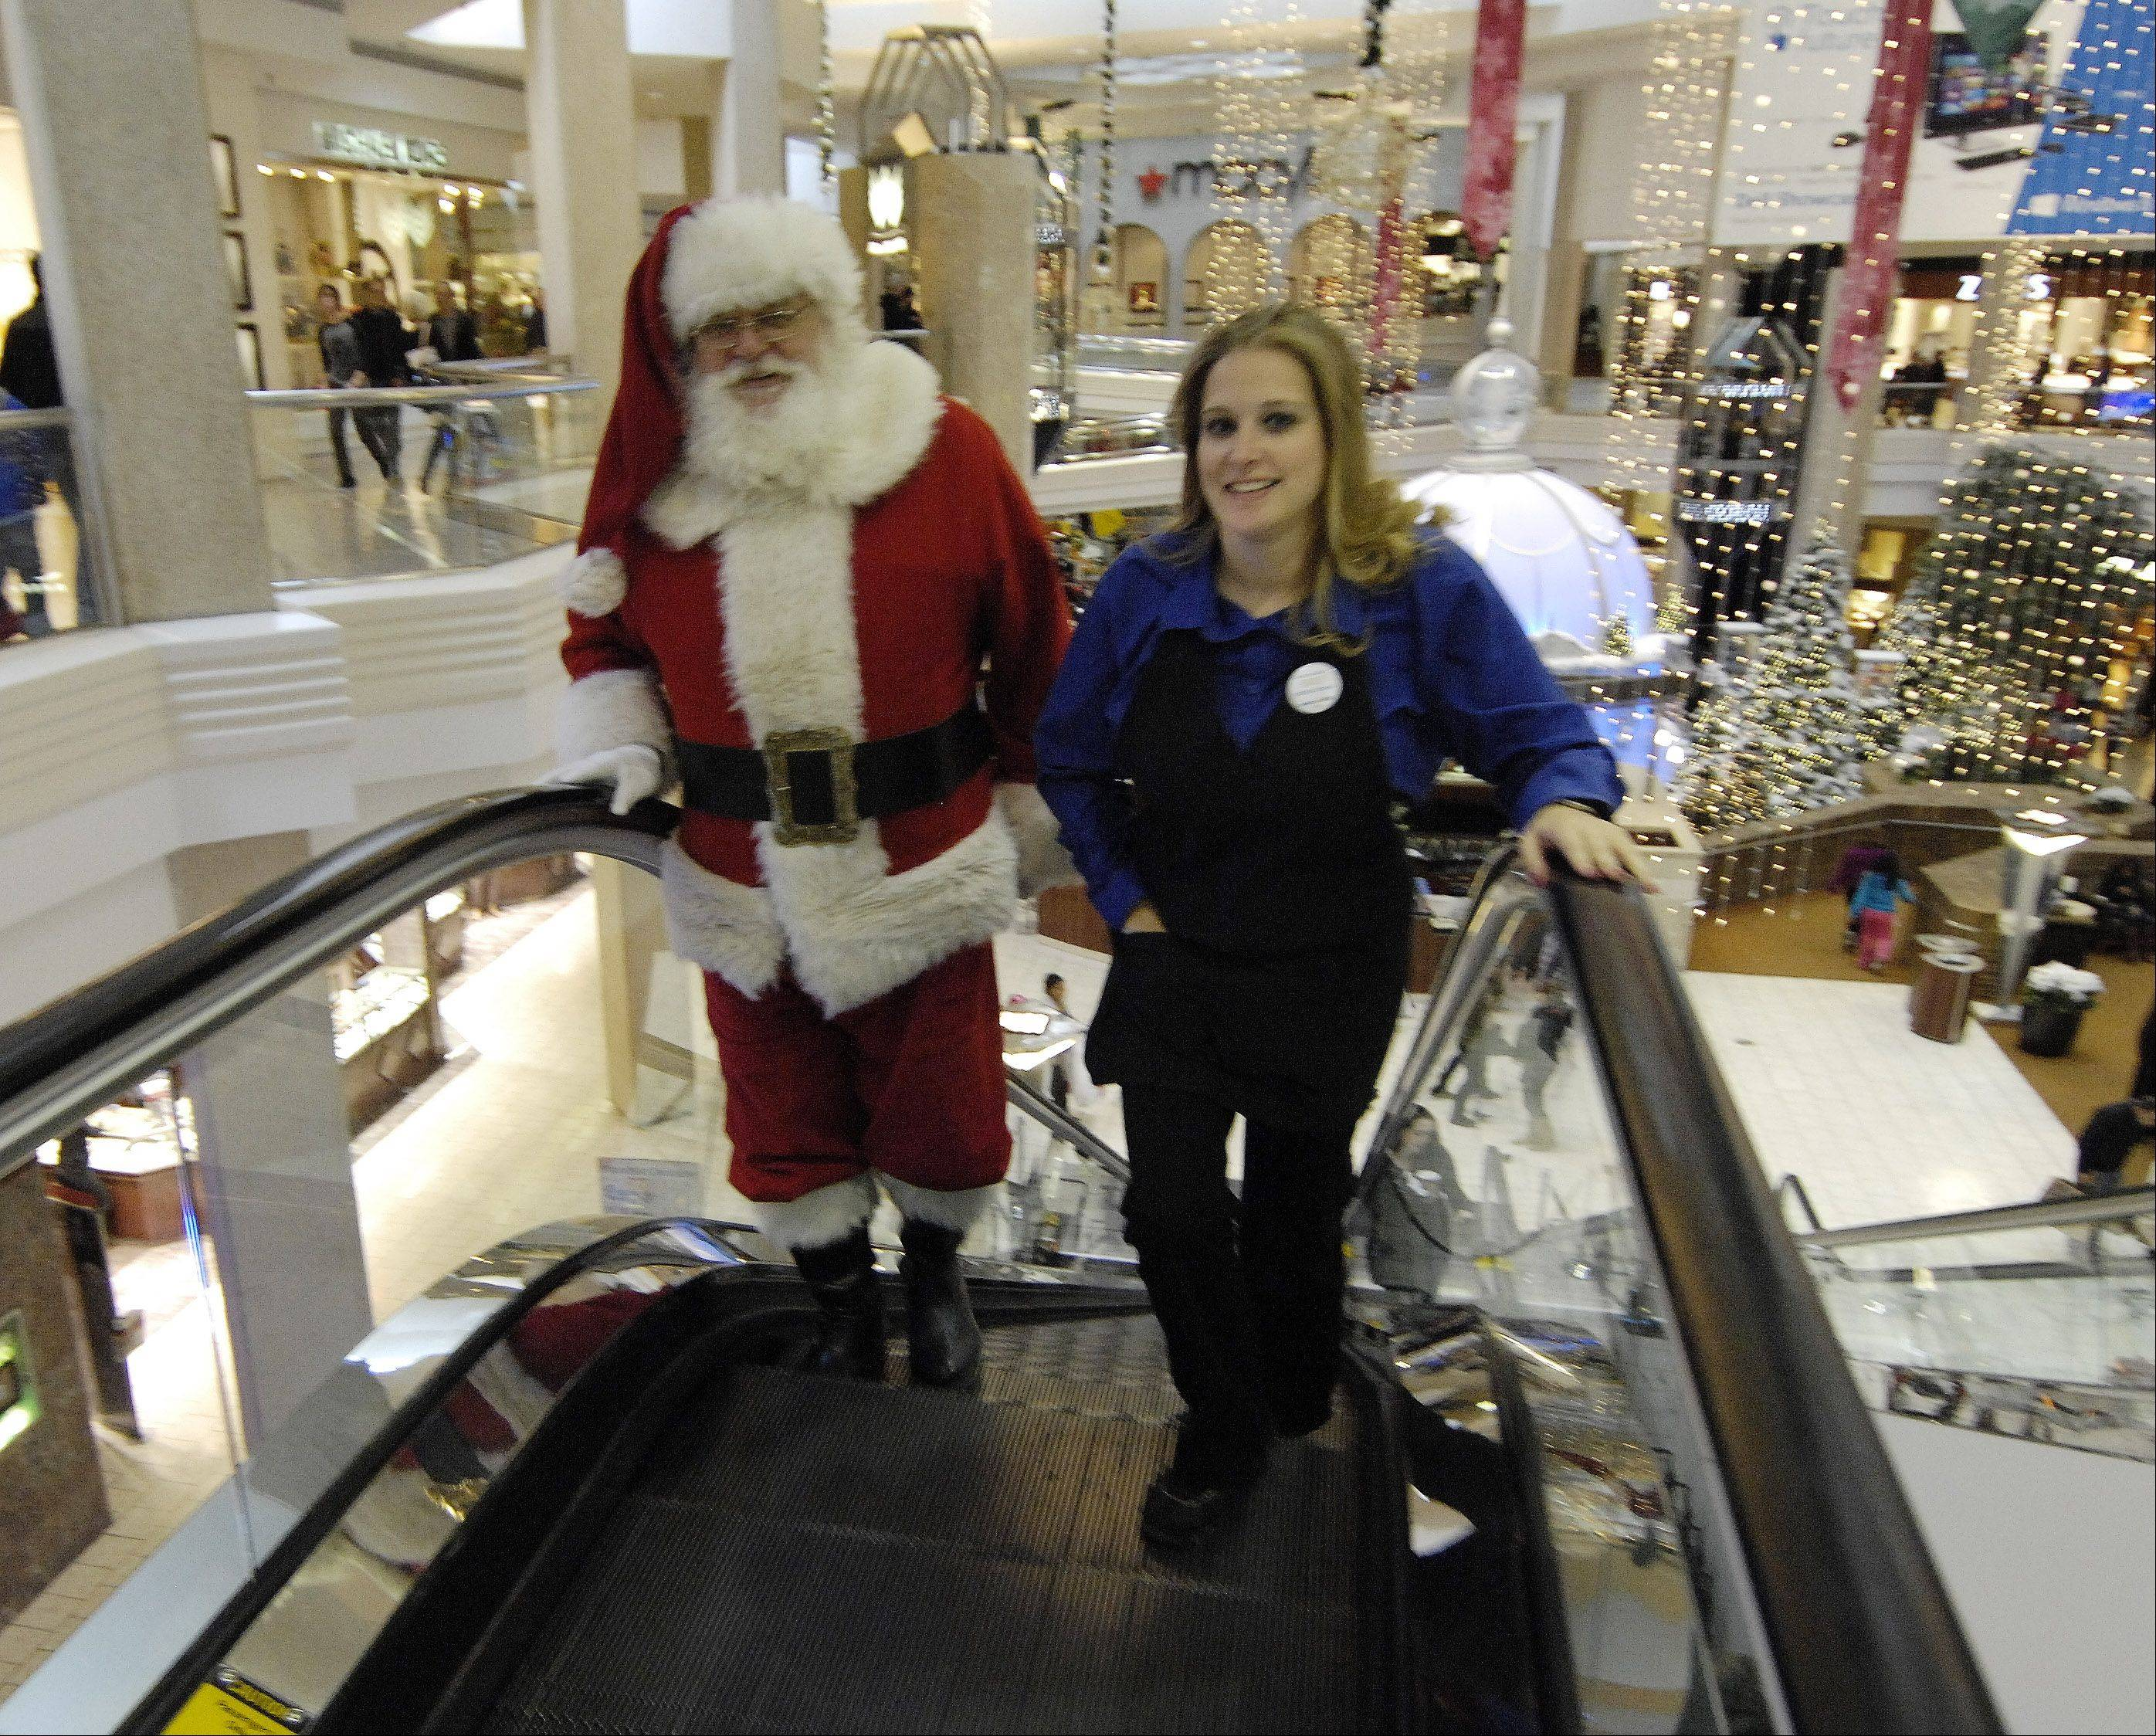 Santa Claus rides the escalator to the second level at Woodfield Mall in Schaumburg on Black Friday.